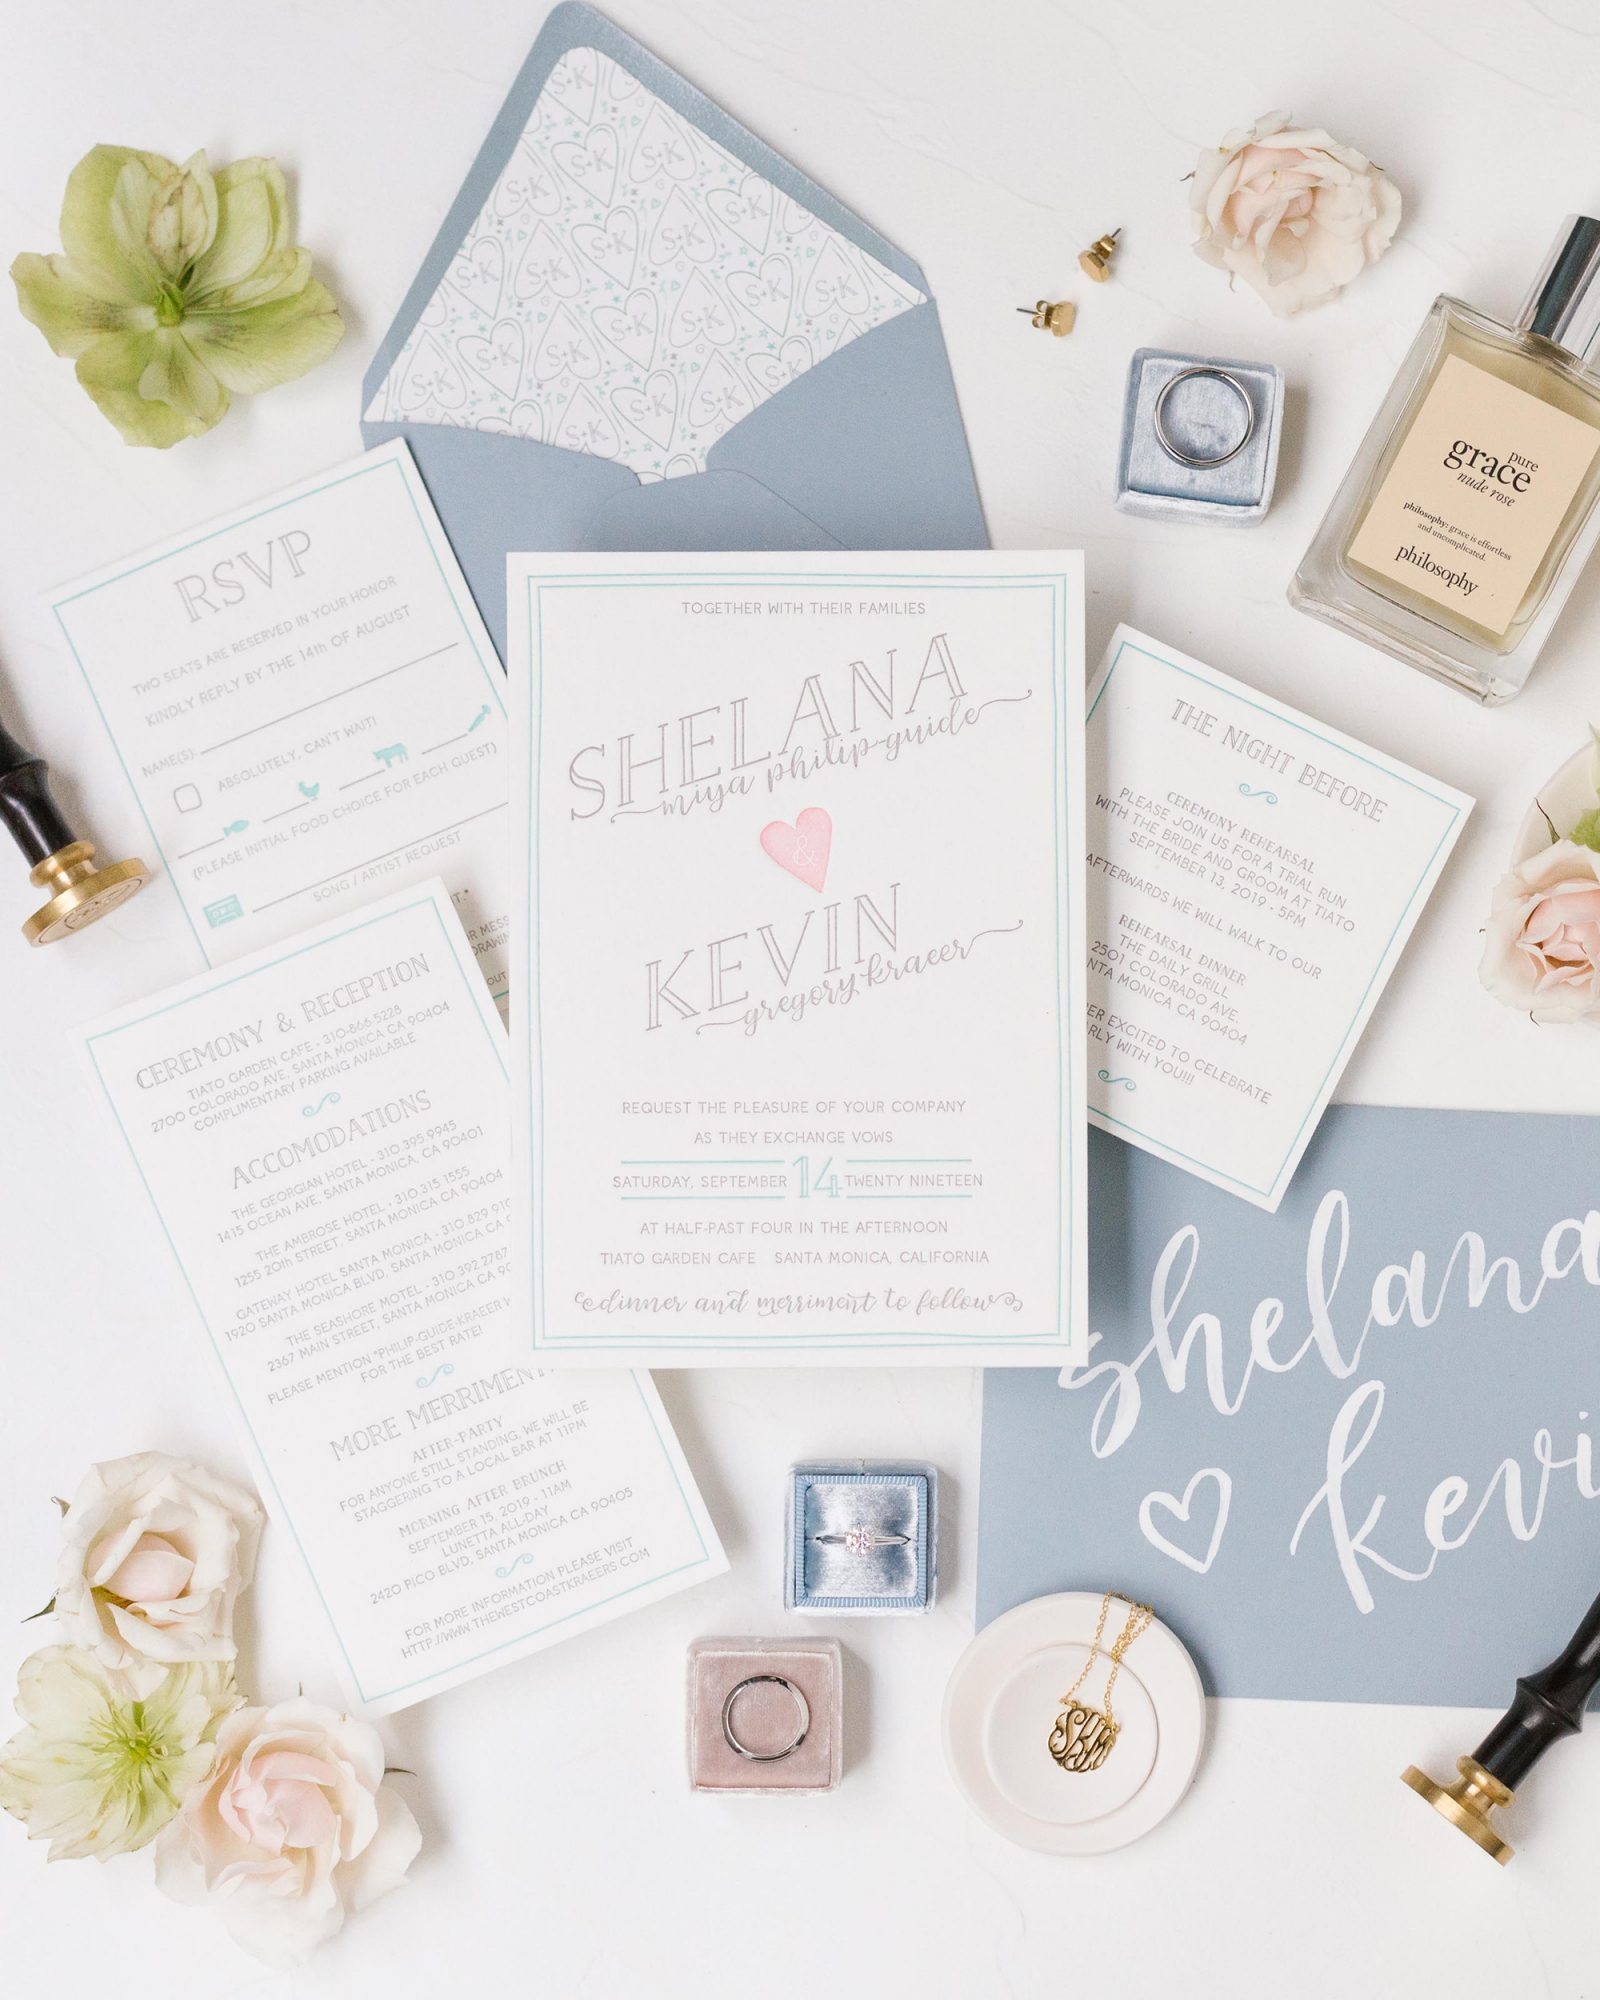 shelana kevin wedding invitation suite with blue detail surrounded by flowers